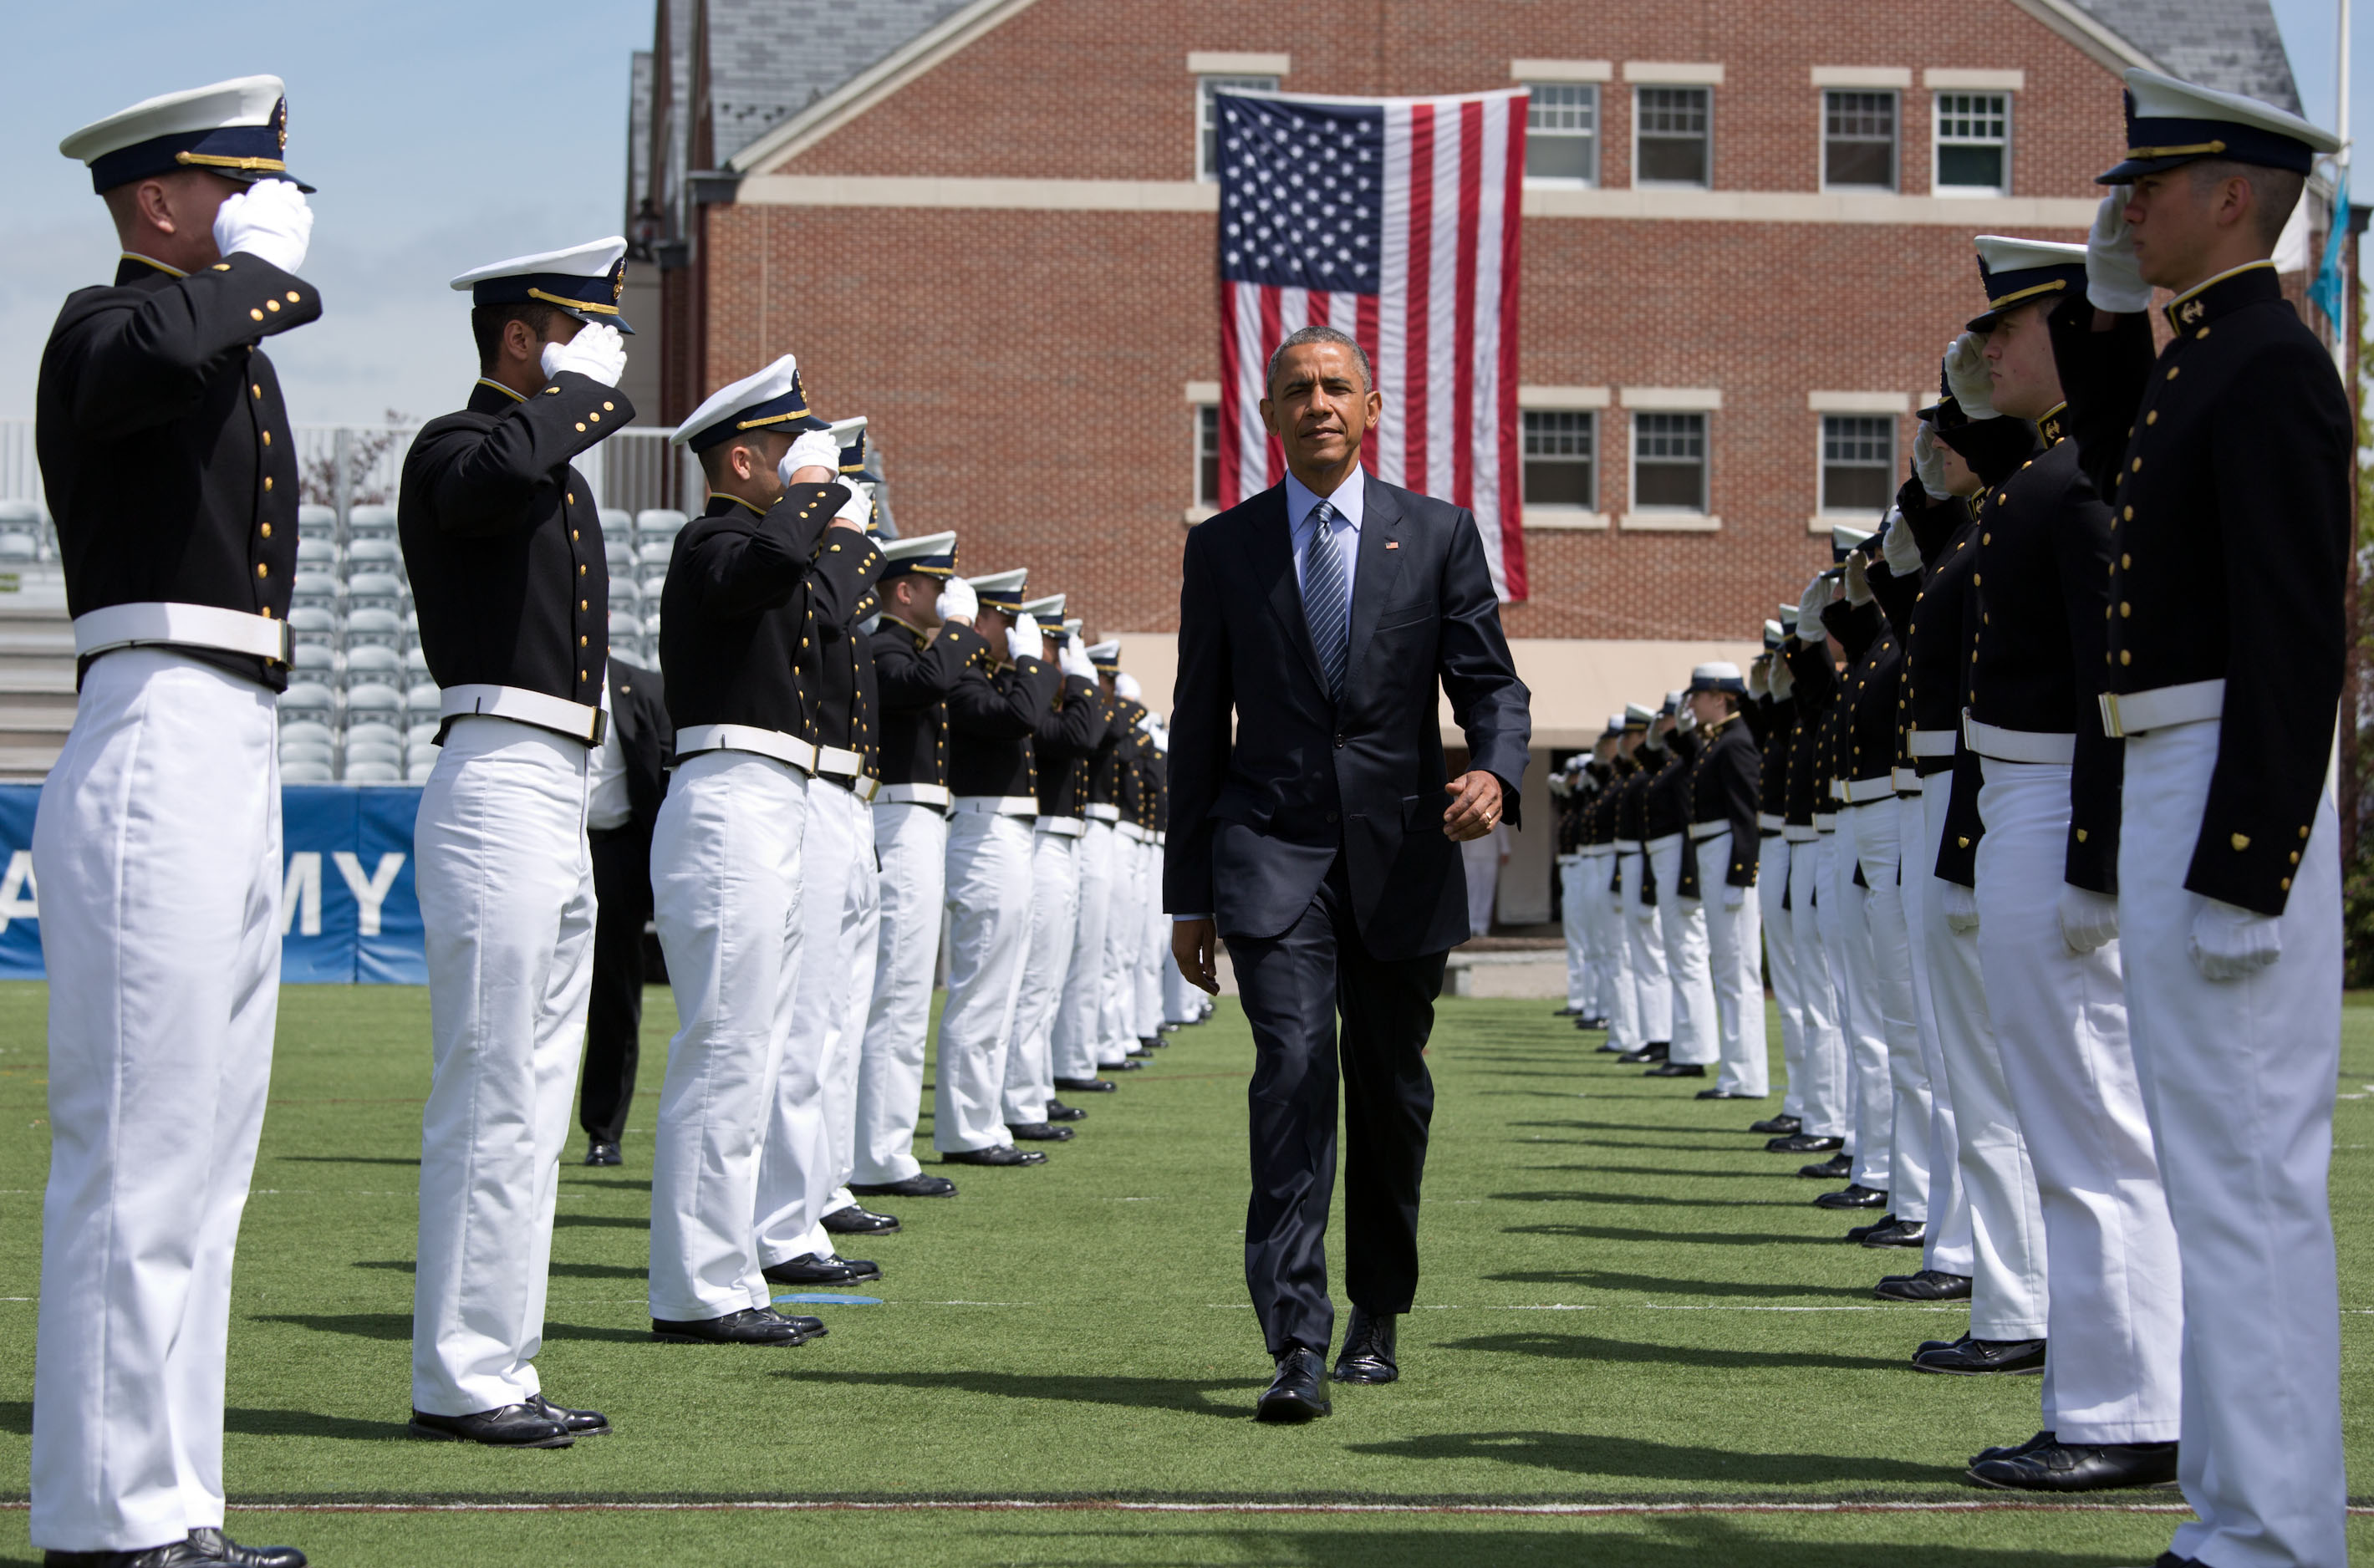 President Obama walks through an honor cordon